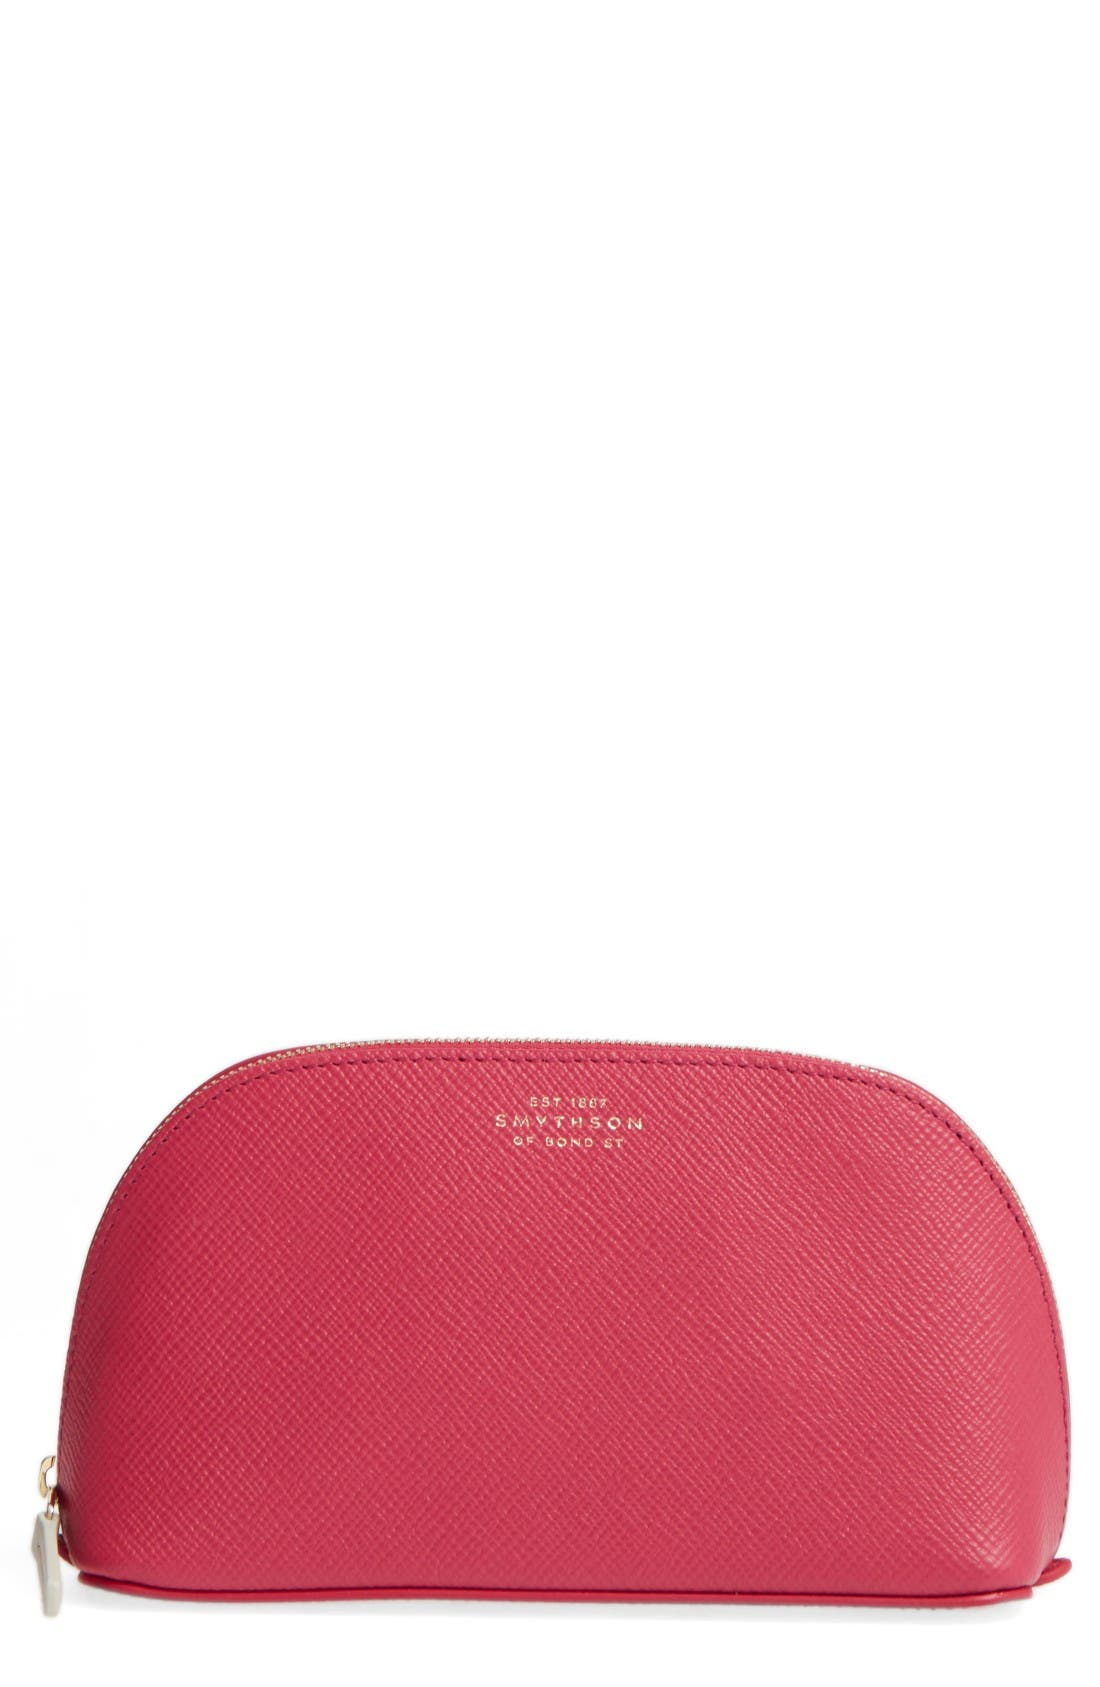 Main Image - Smythson Small Calfskin Leather Cosmetics Case